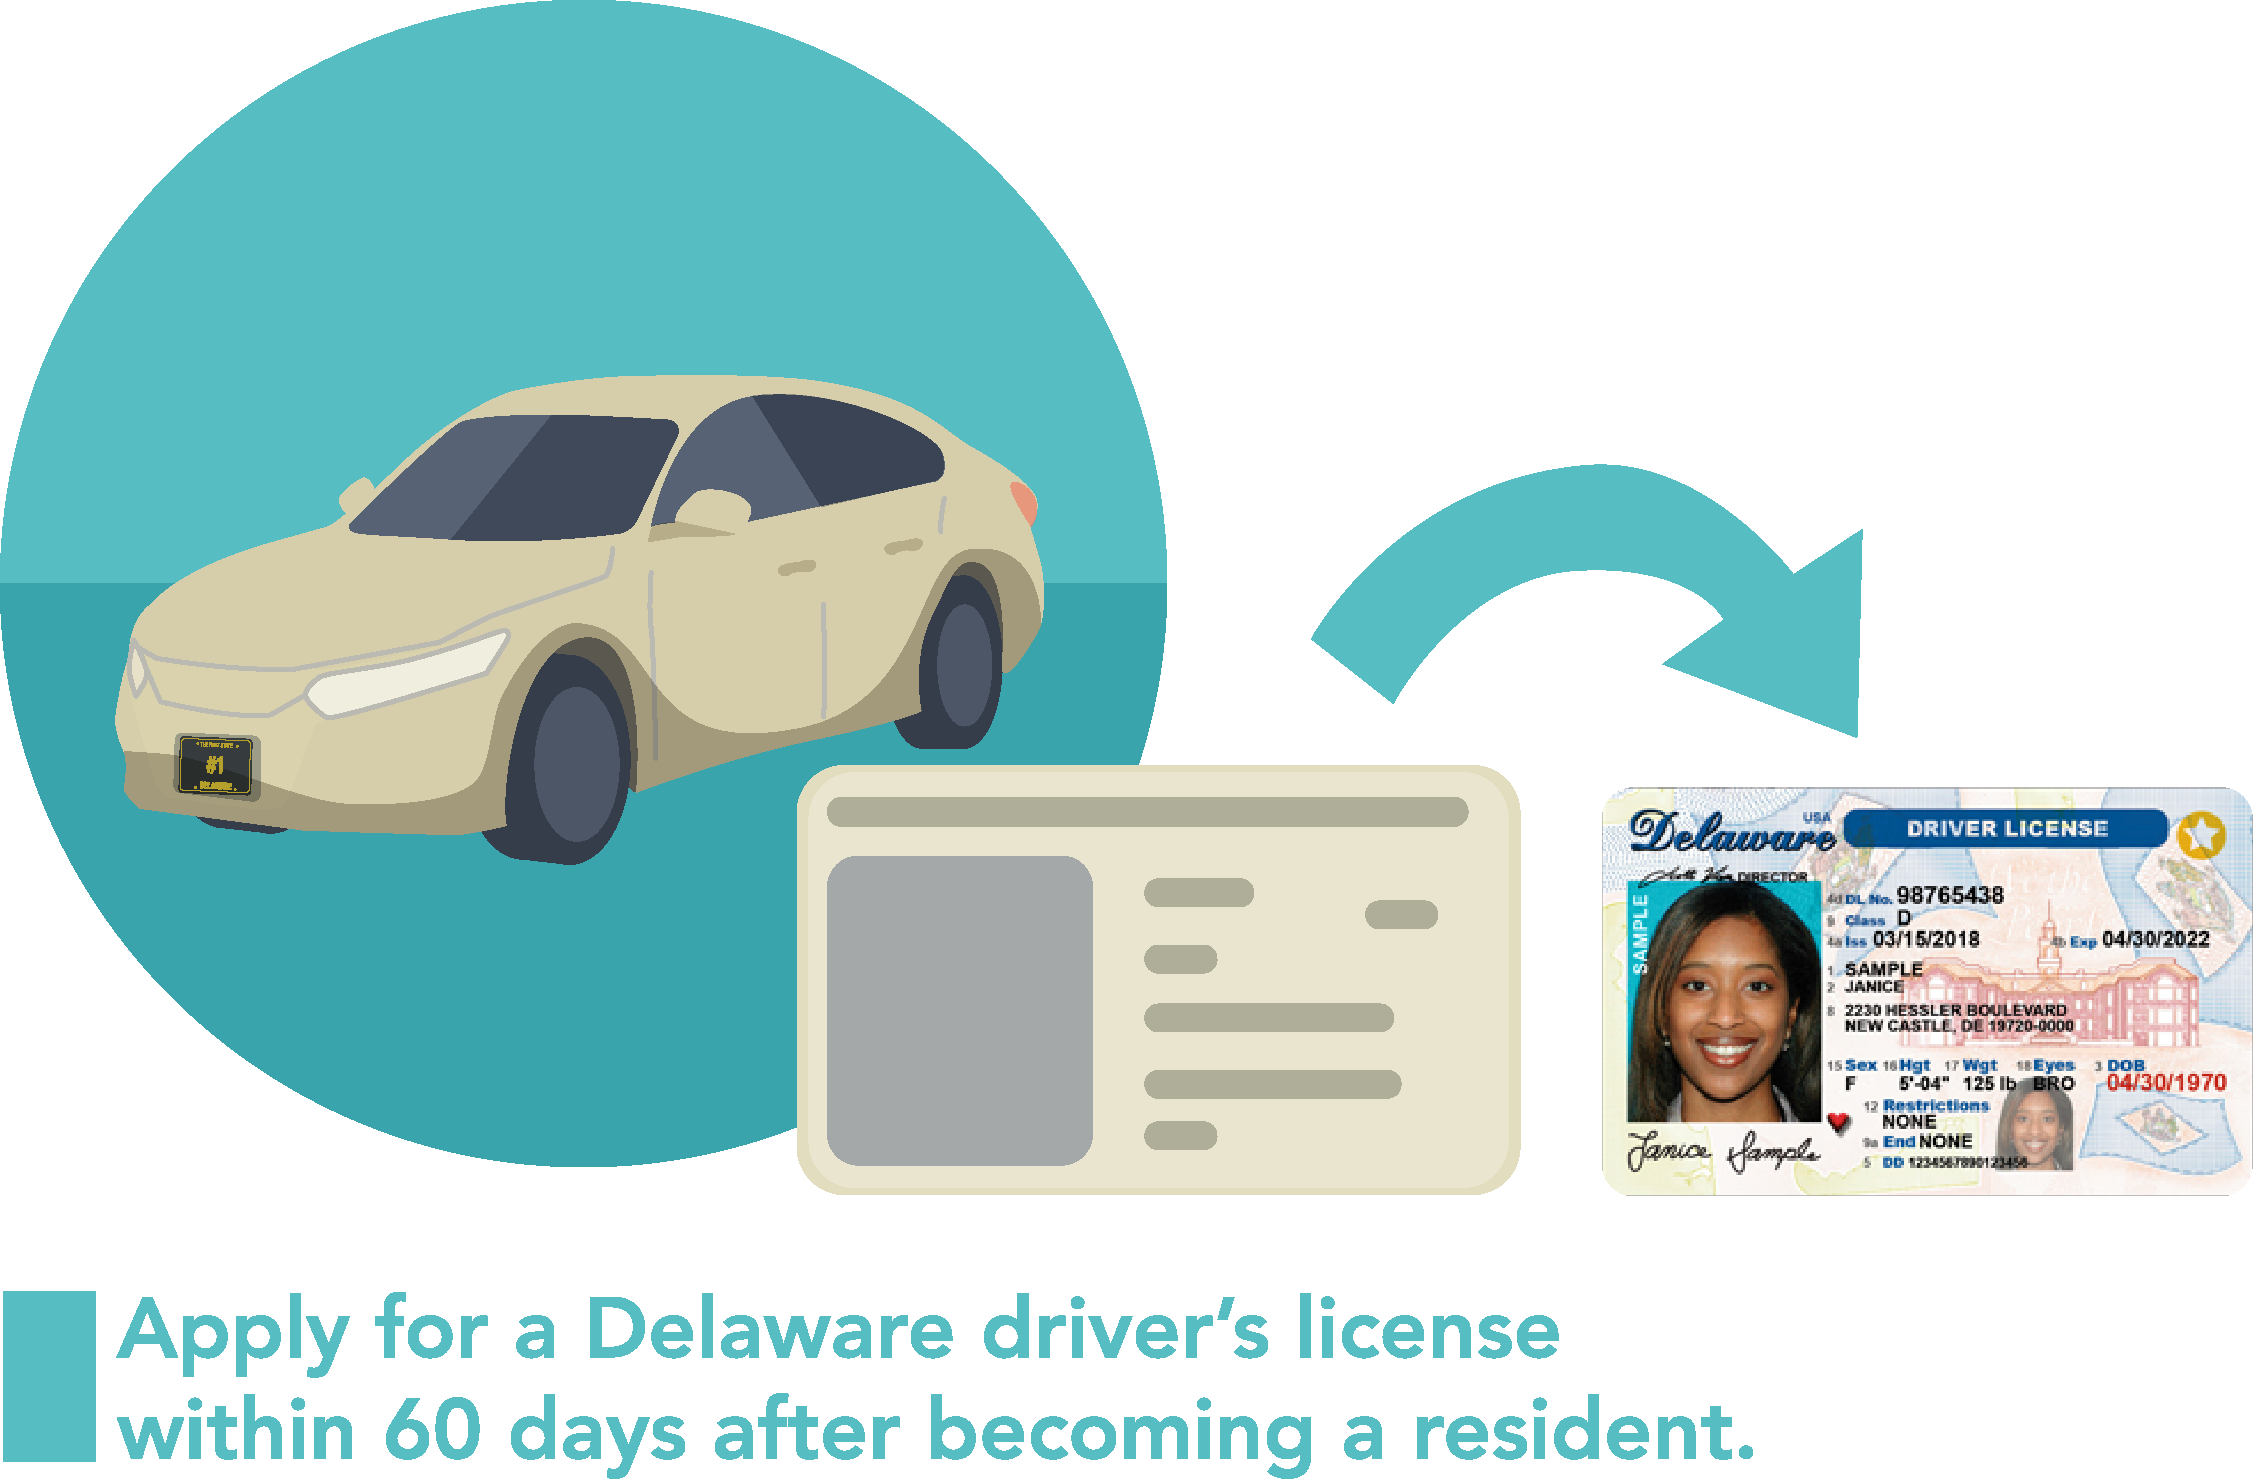 Graphic of car and a driver's license.